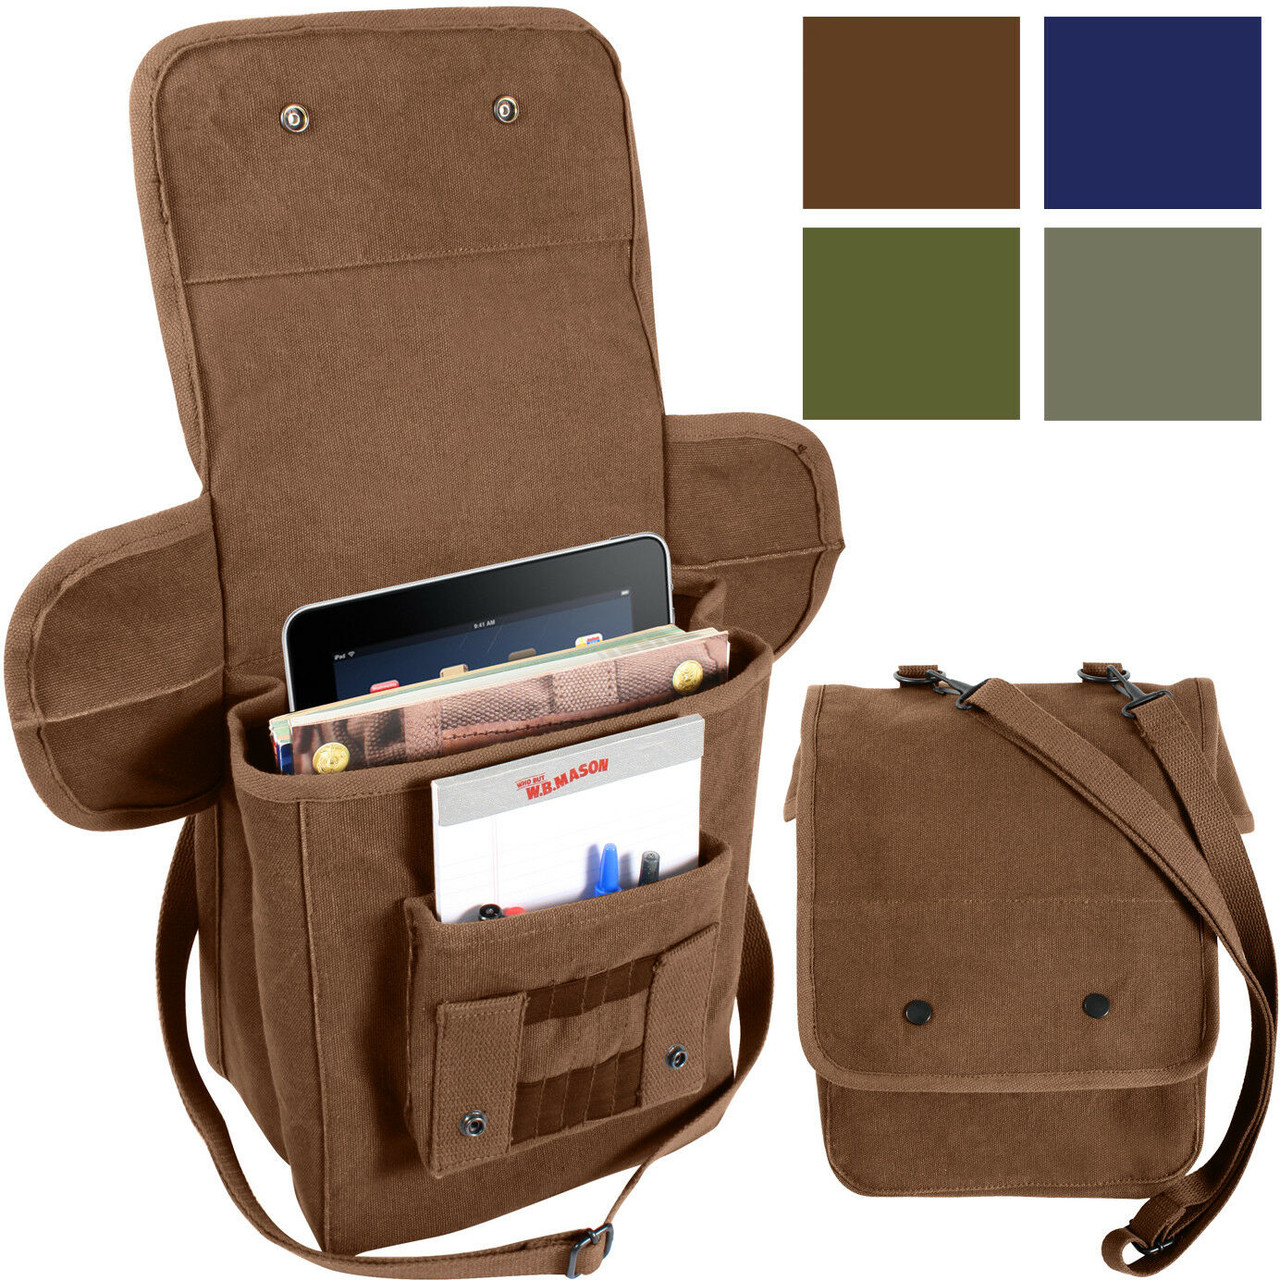 Army Olive Drab Military Tavtical MOLLE Tech ipad Tablet Pouch Shoulder Bag 9760